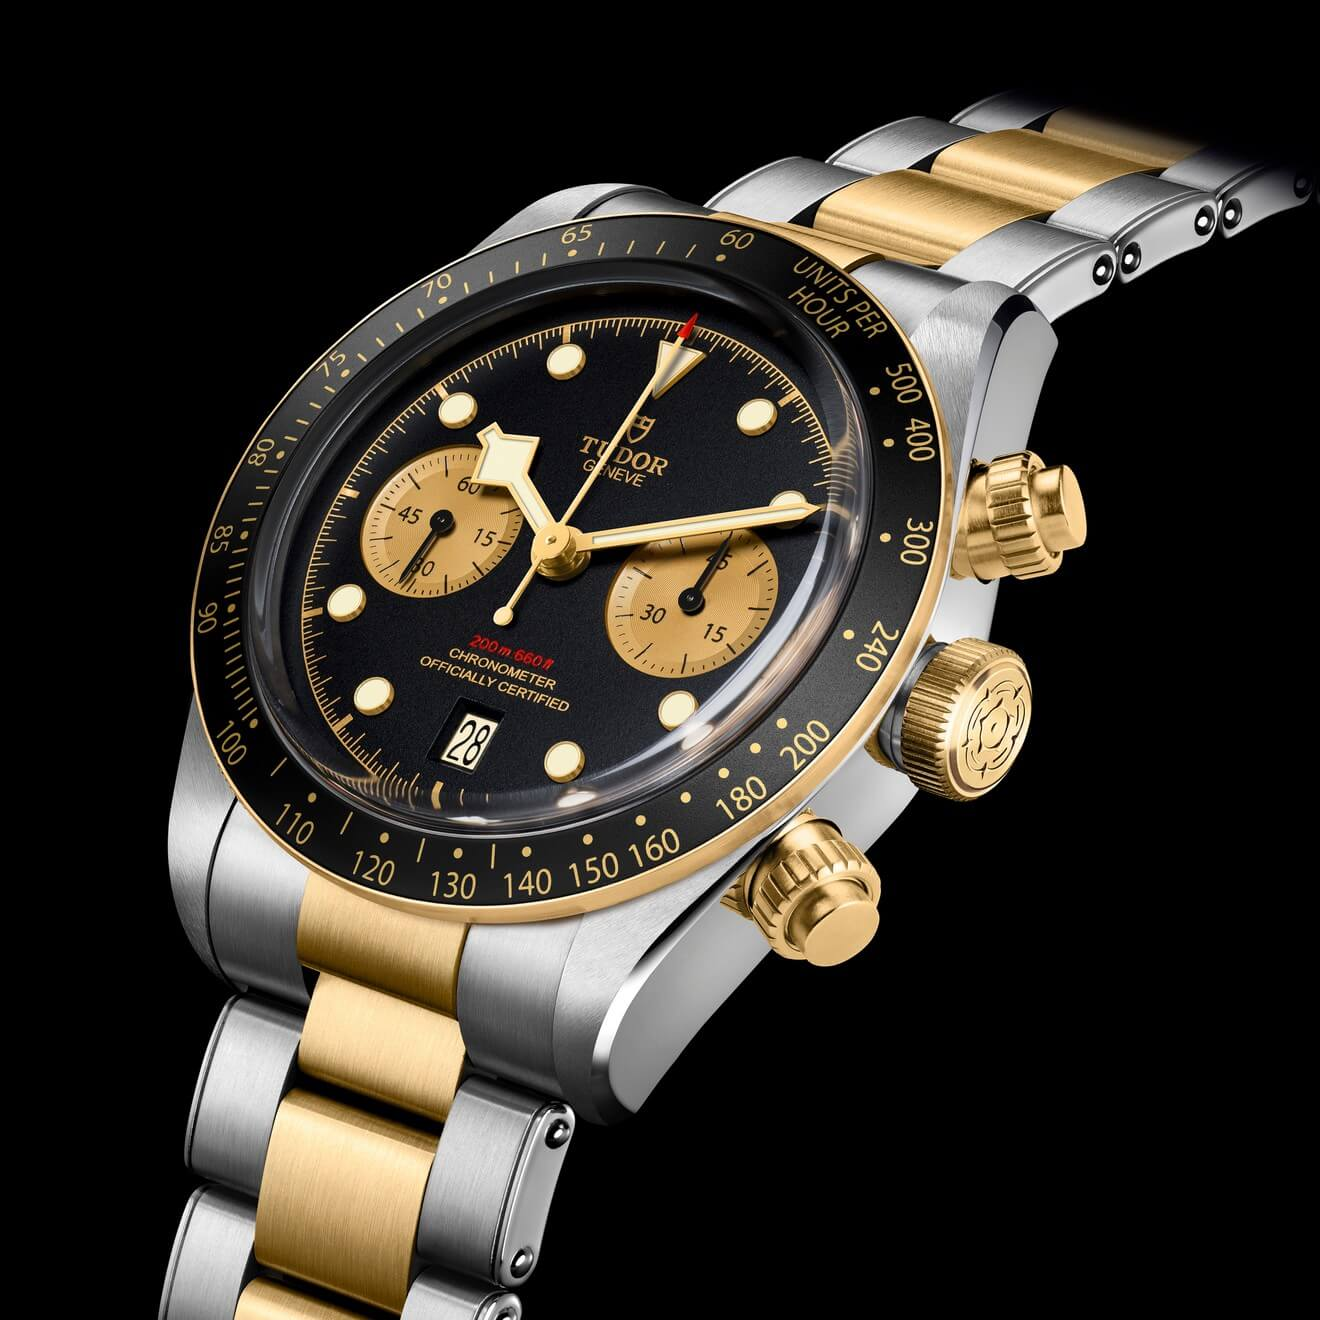 New Tudor Black Bay Chrono SG 79363N Baselworld 2019 | Mamic 1970